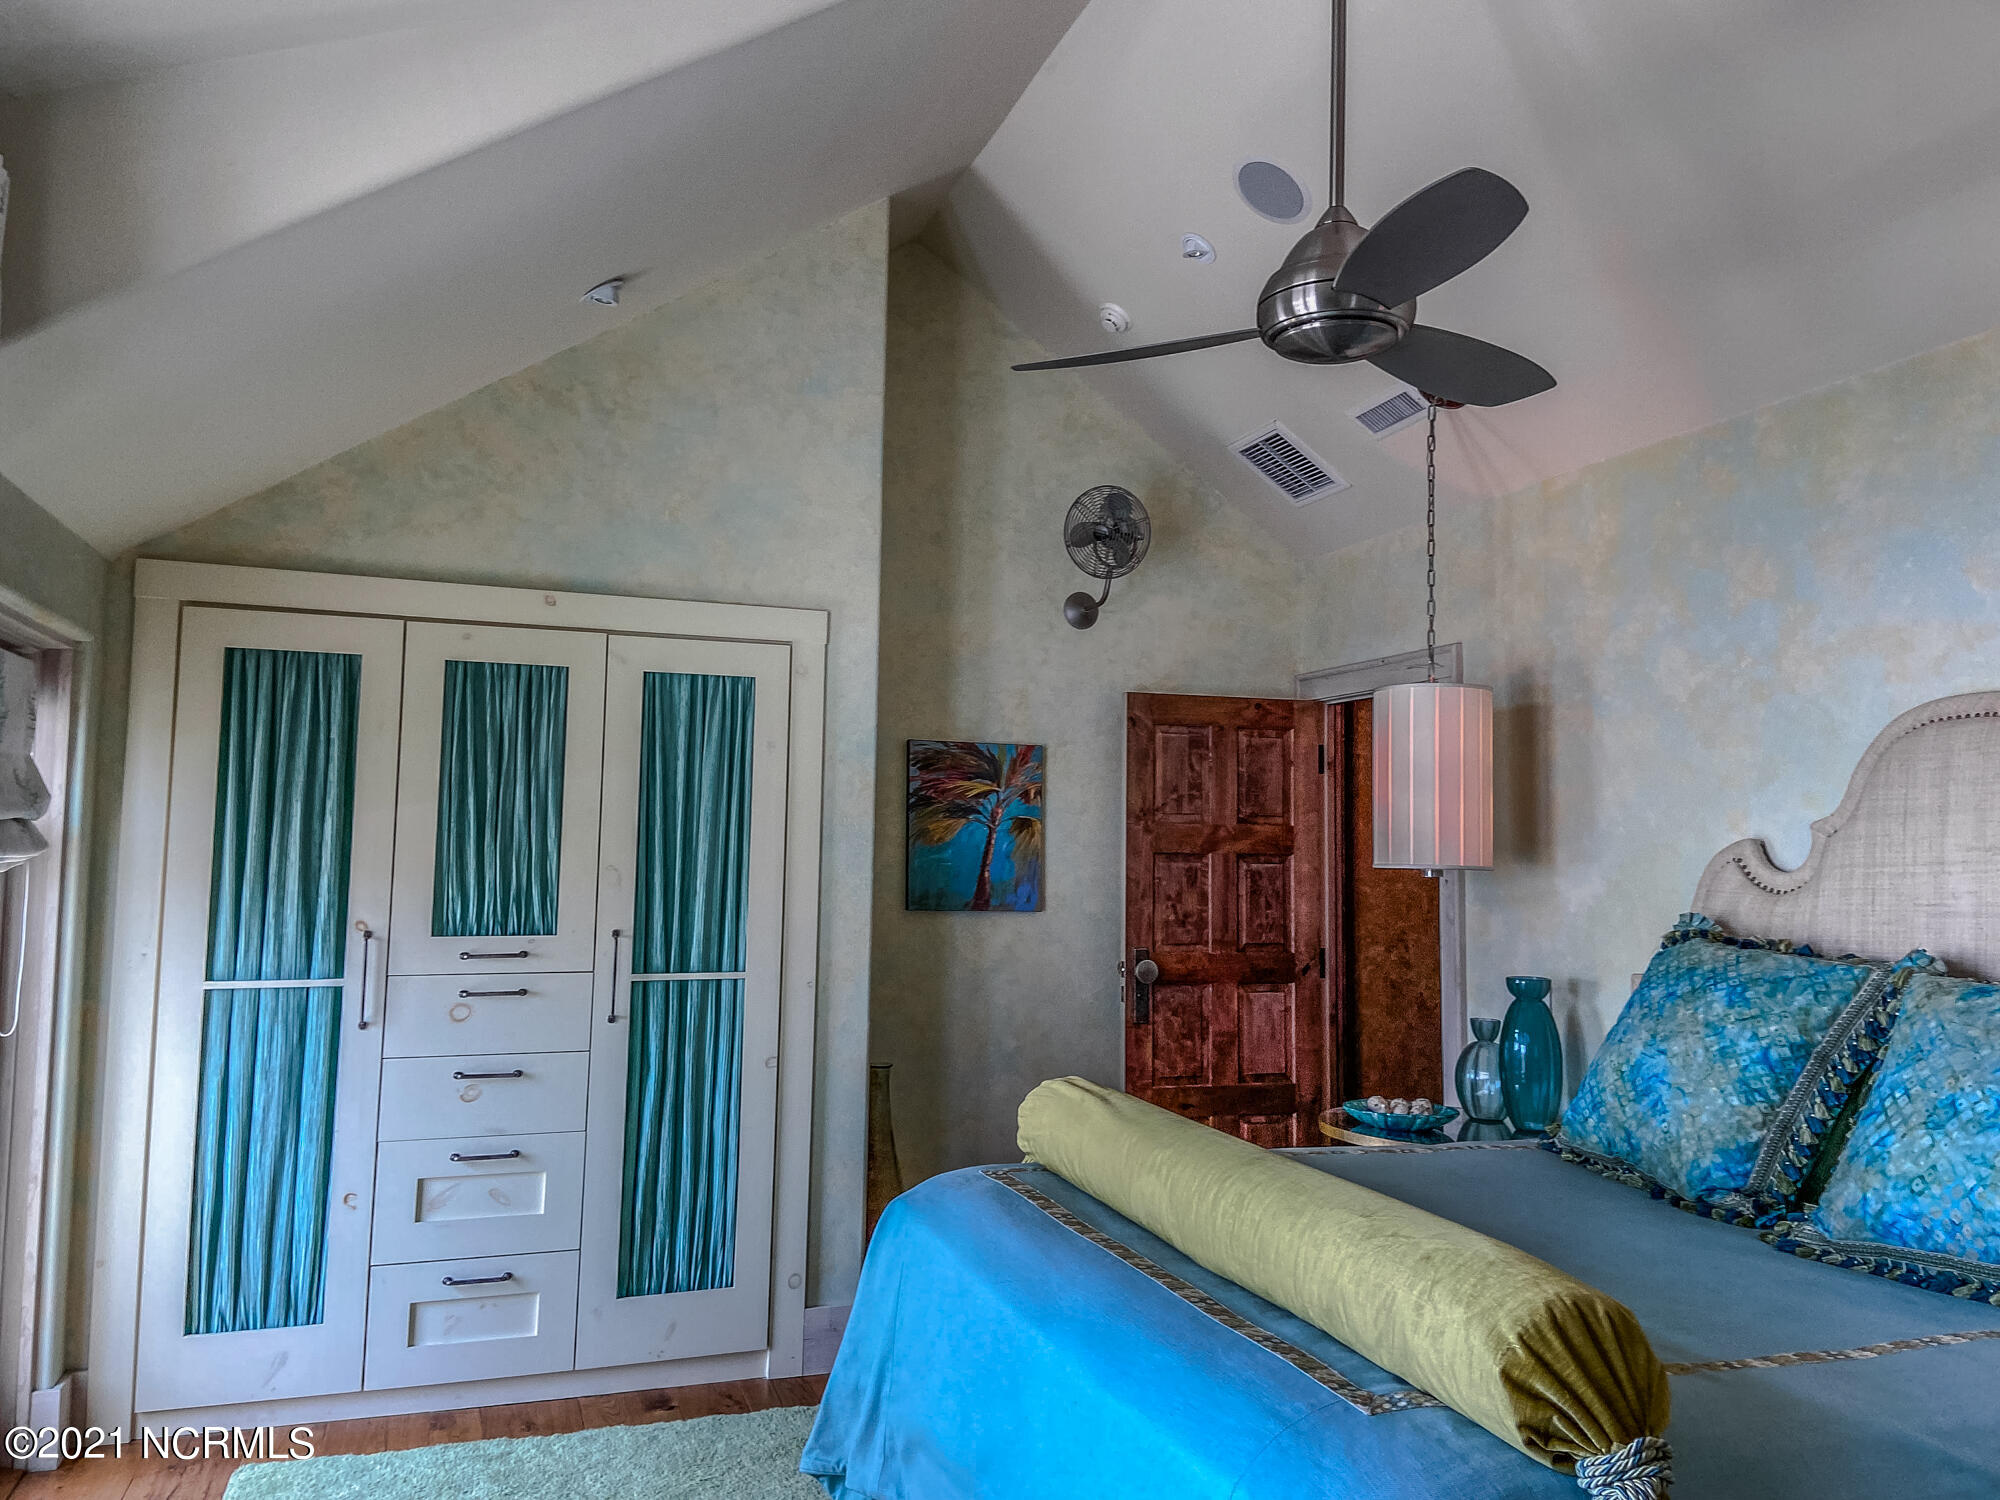 218 Station House Way, Bald Head Island, North Carolina 28461, 6 Bedrooms Bedrooms, 7 Rooms Rooms,5 BathroomsBathrooms,Single family residence,For sale,Station House,100285140